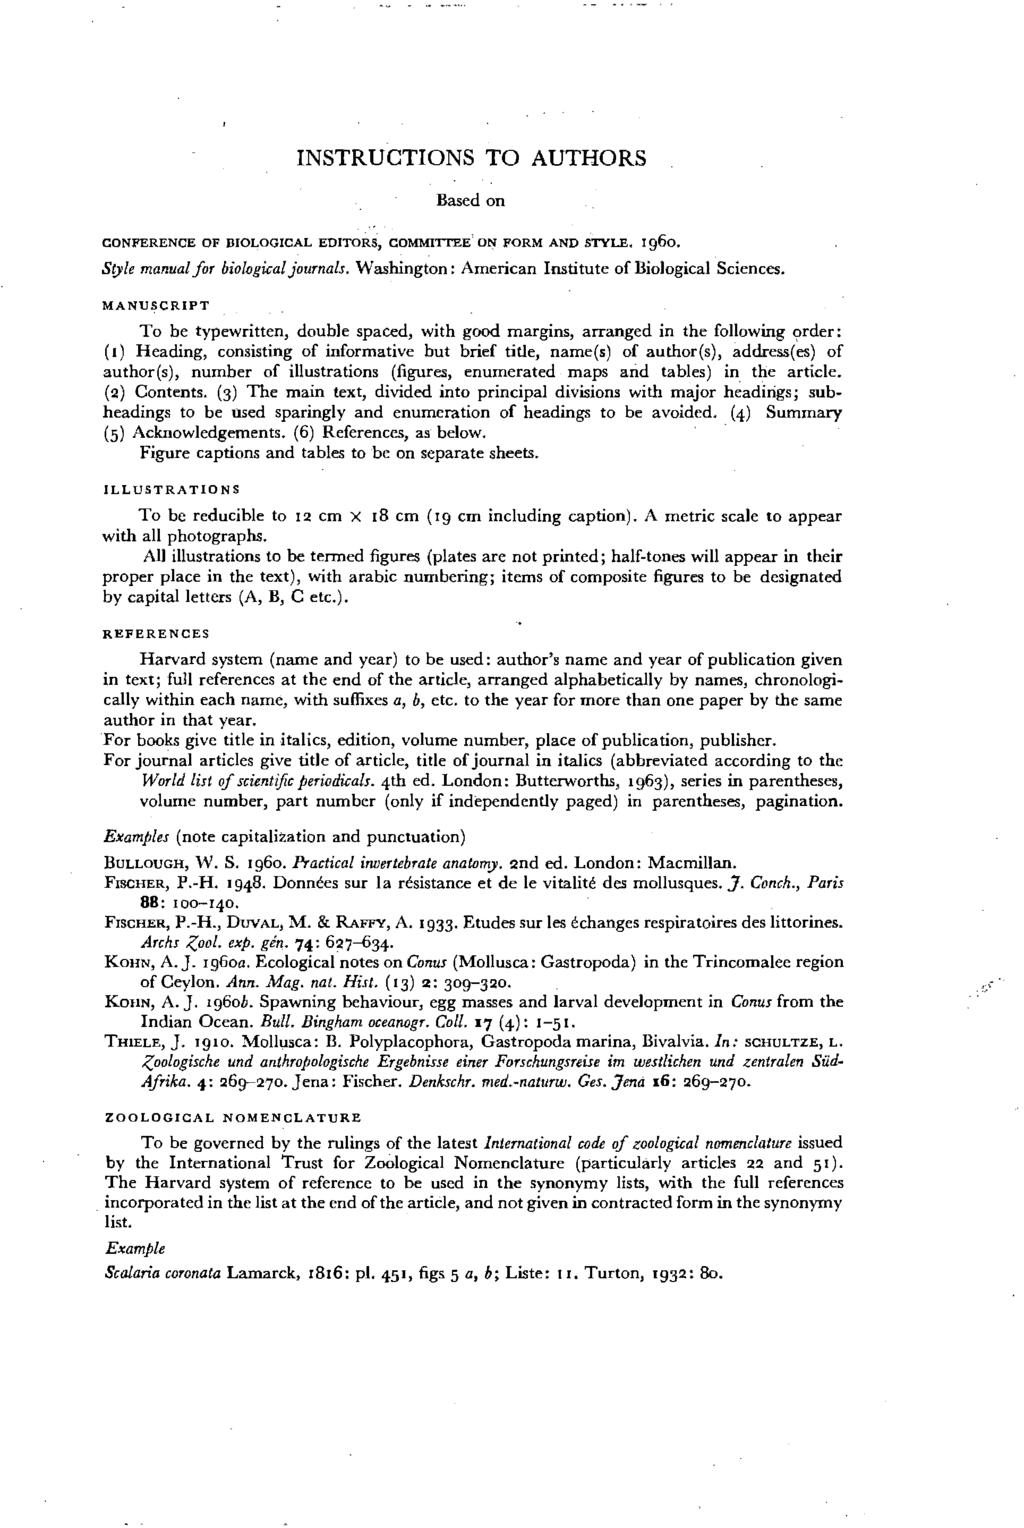 INSTRUCTIONS TO AUTHORS Based on CONFERENCE OF DJOLOGICAL EDITORS, COMMITTEE' ON FORM AND STYLE. 1960. Sole manual for hiowgical journals. Washington: American Insti tu te of Biological Sciences.